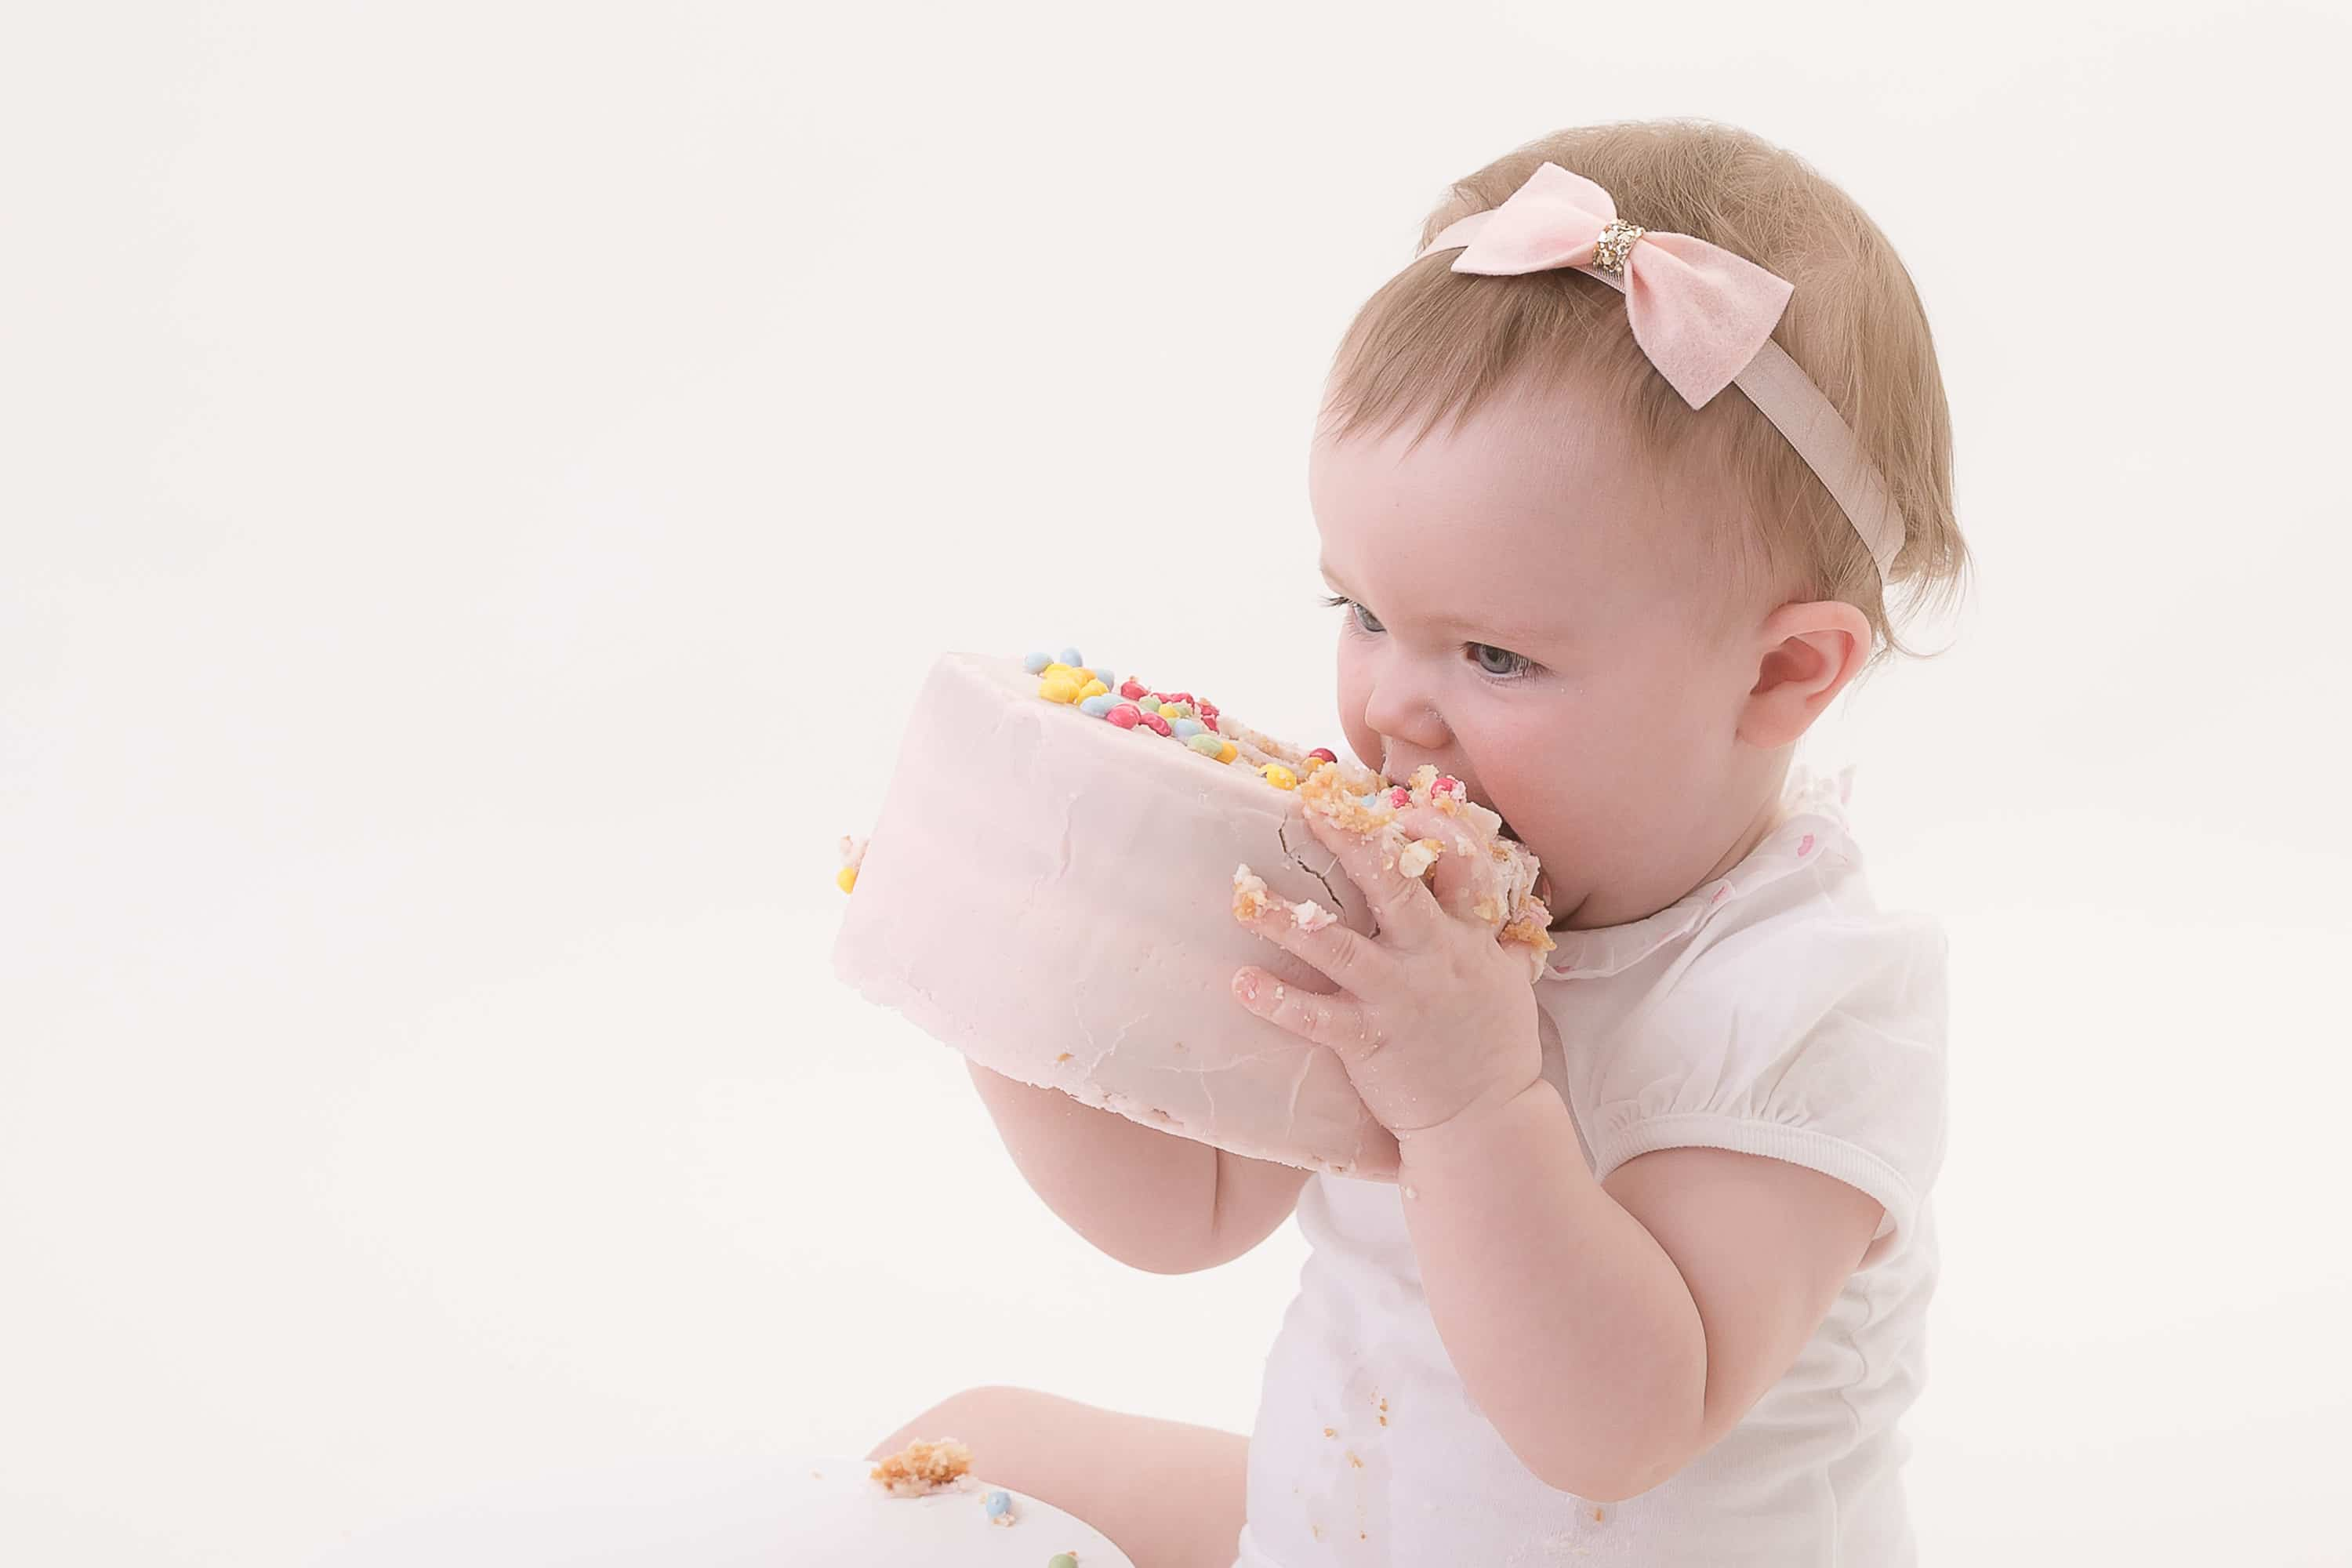 baby eating a big cake